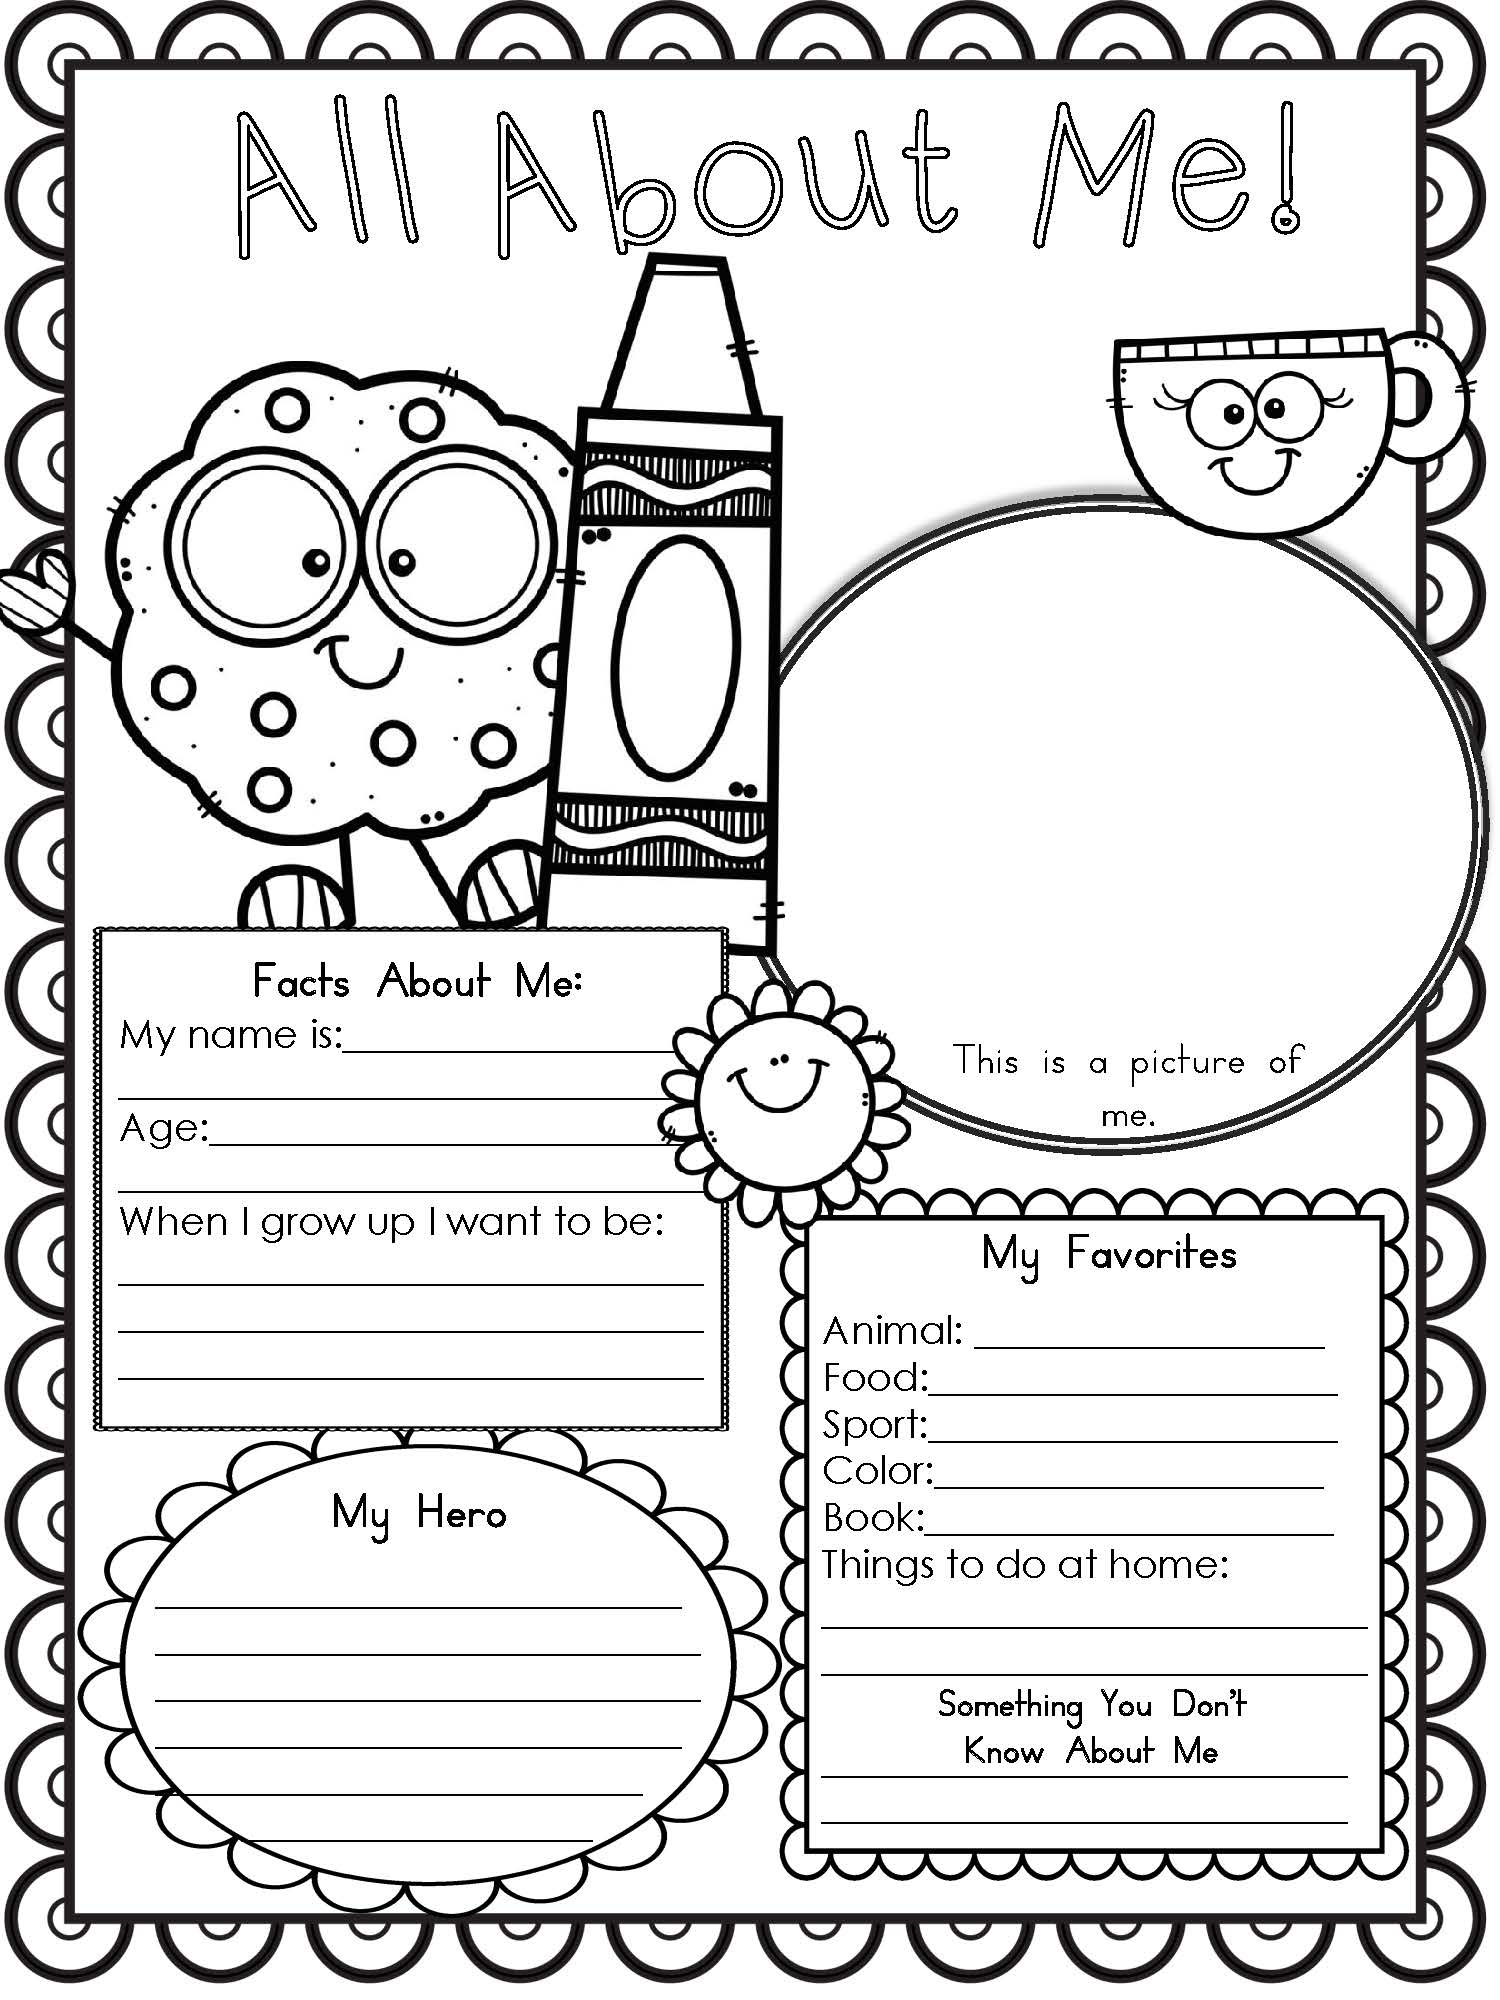 Free Printable All About Me Worksheet - Modern Homeschool Family - Free Printable All About Me Worksheet